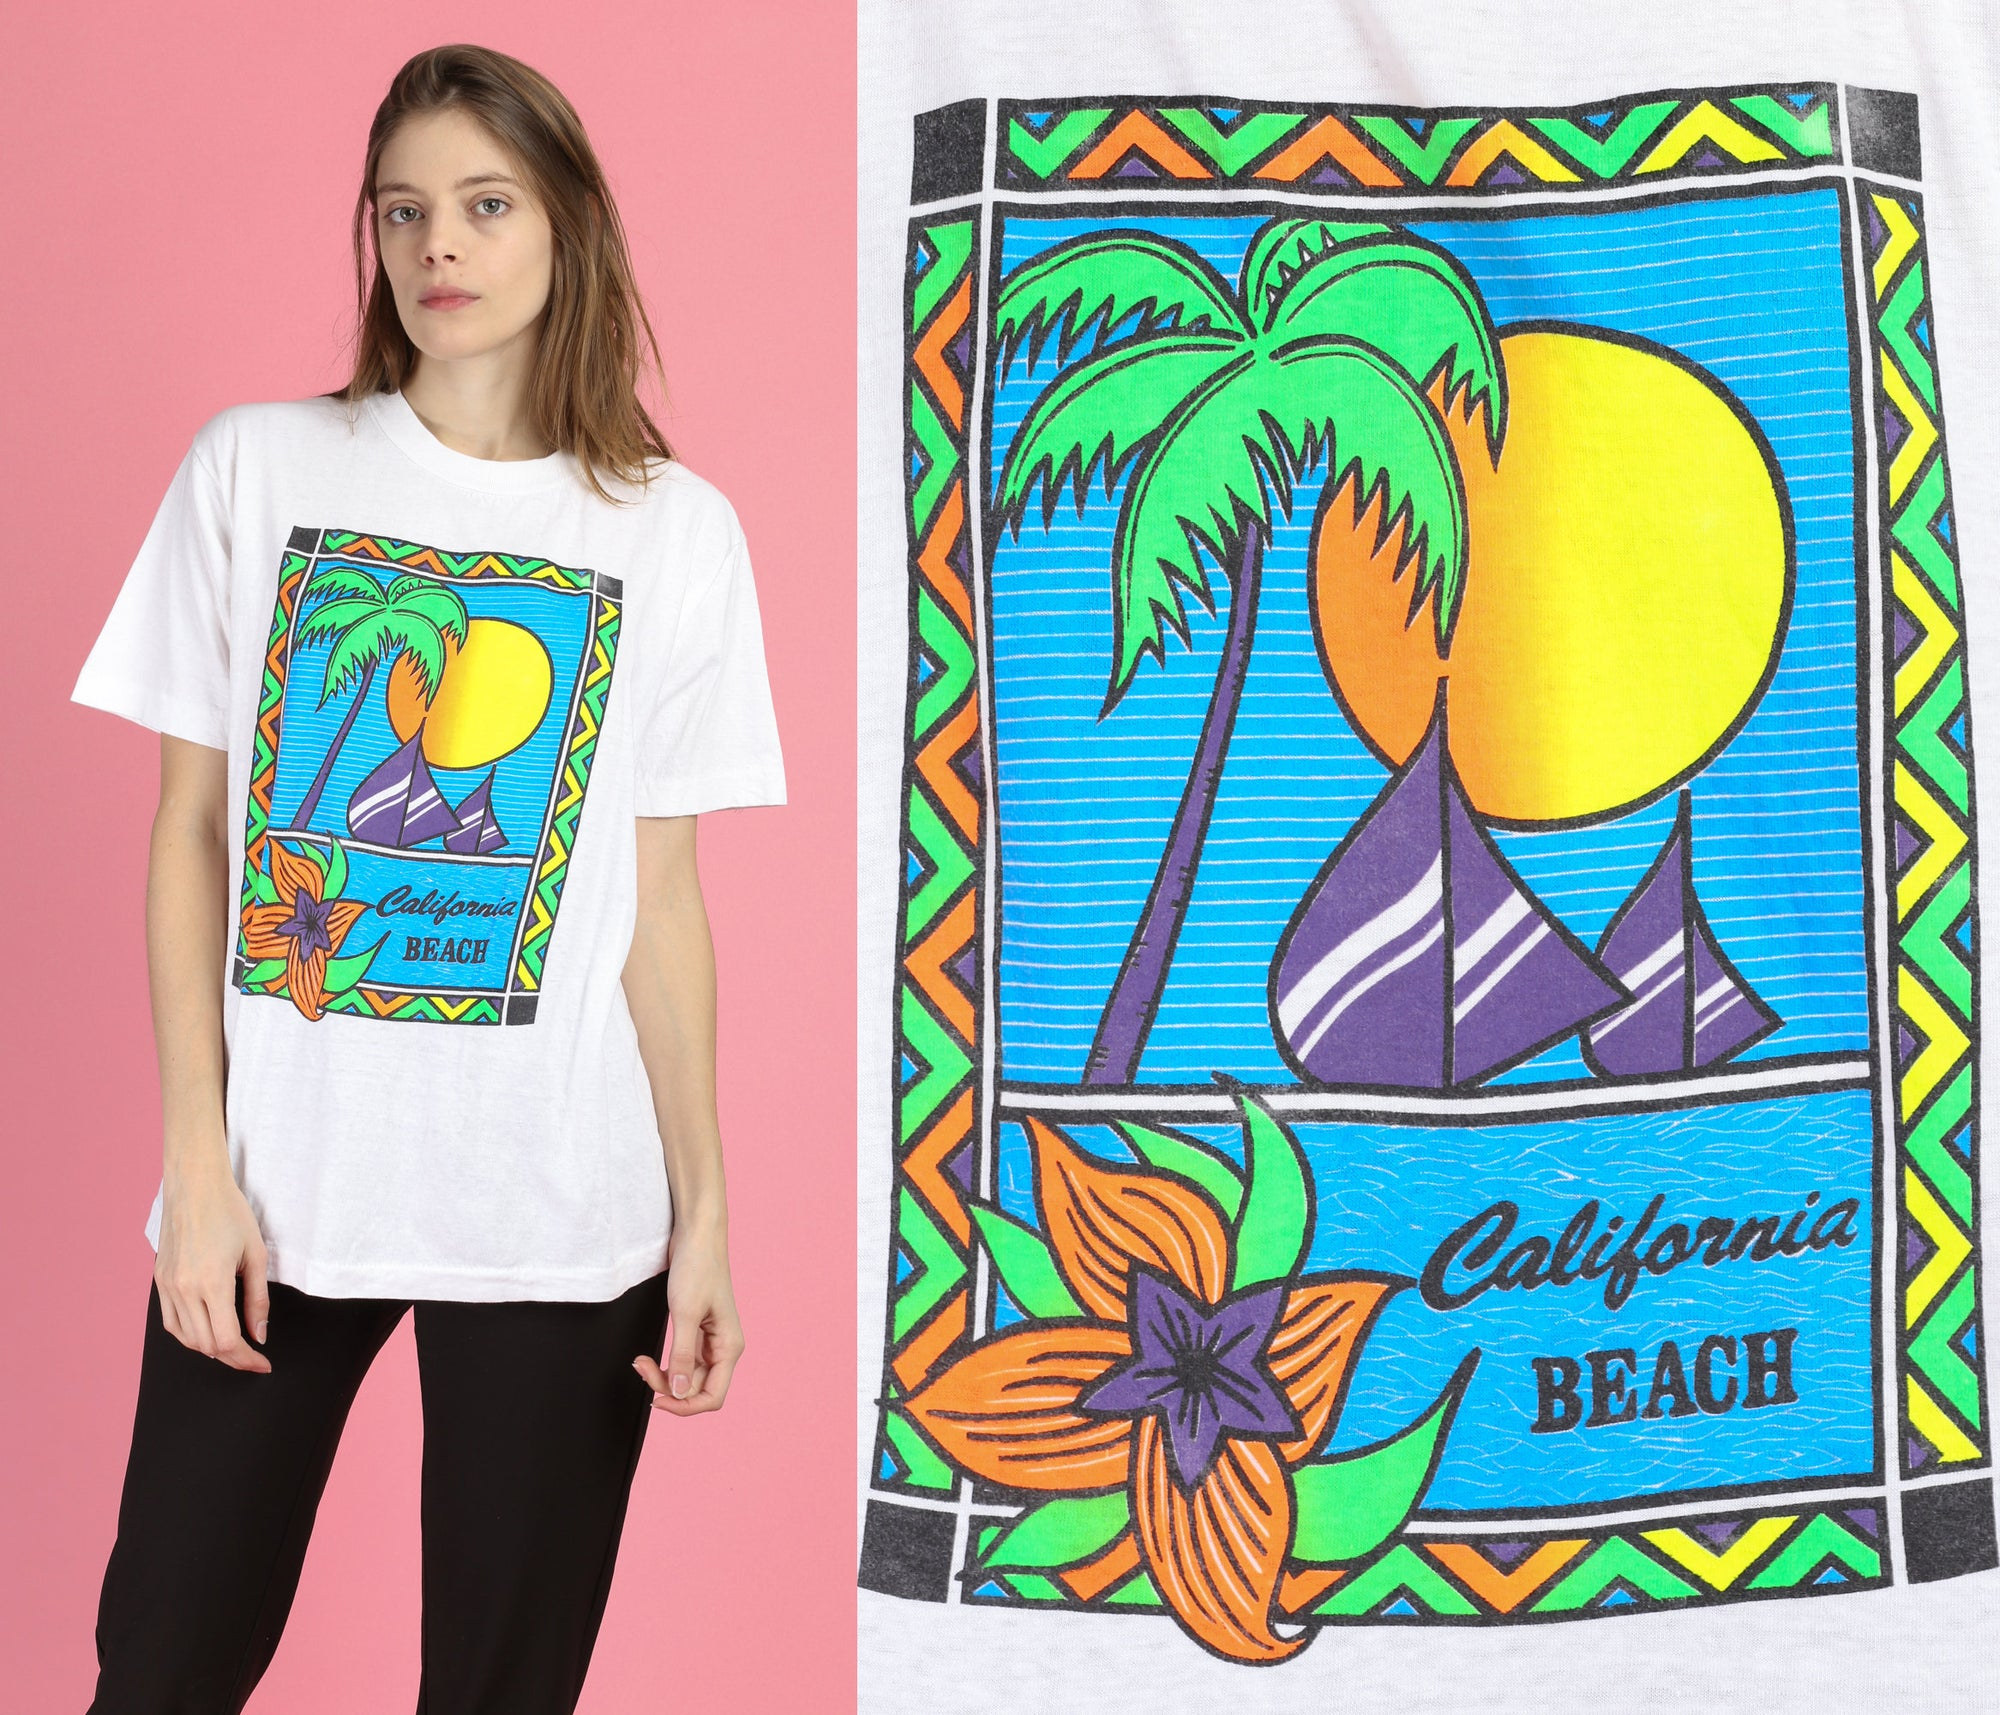 90s California Beach T Shirt - Large